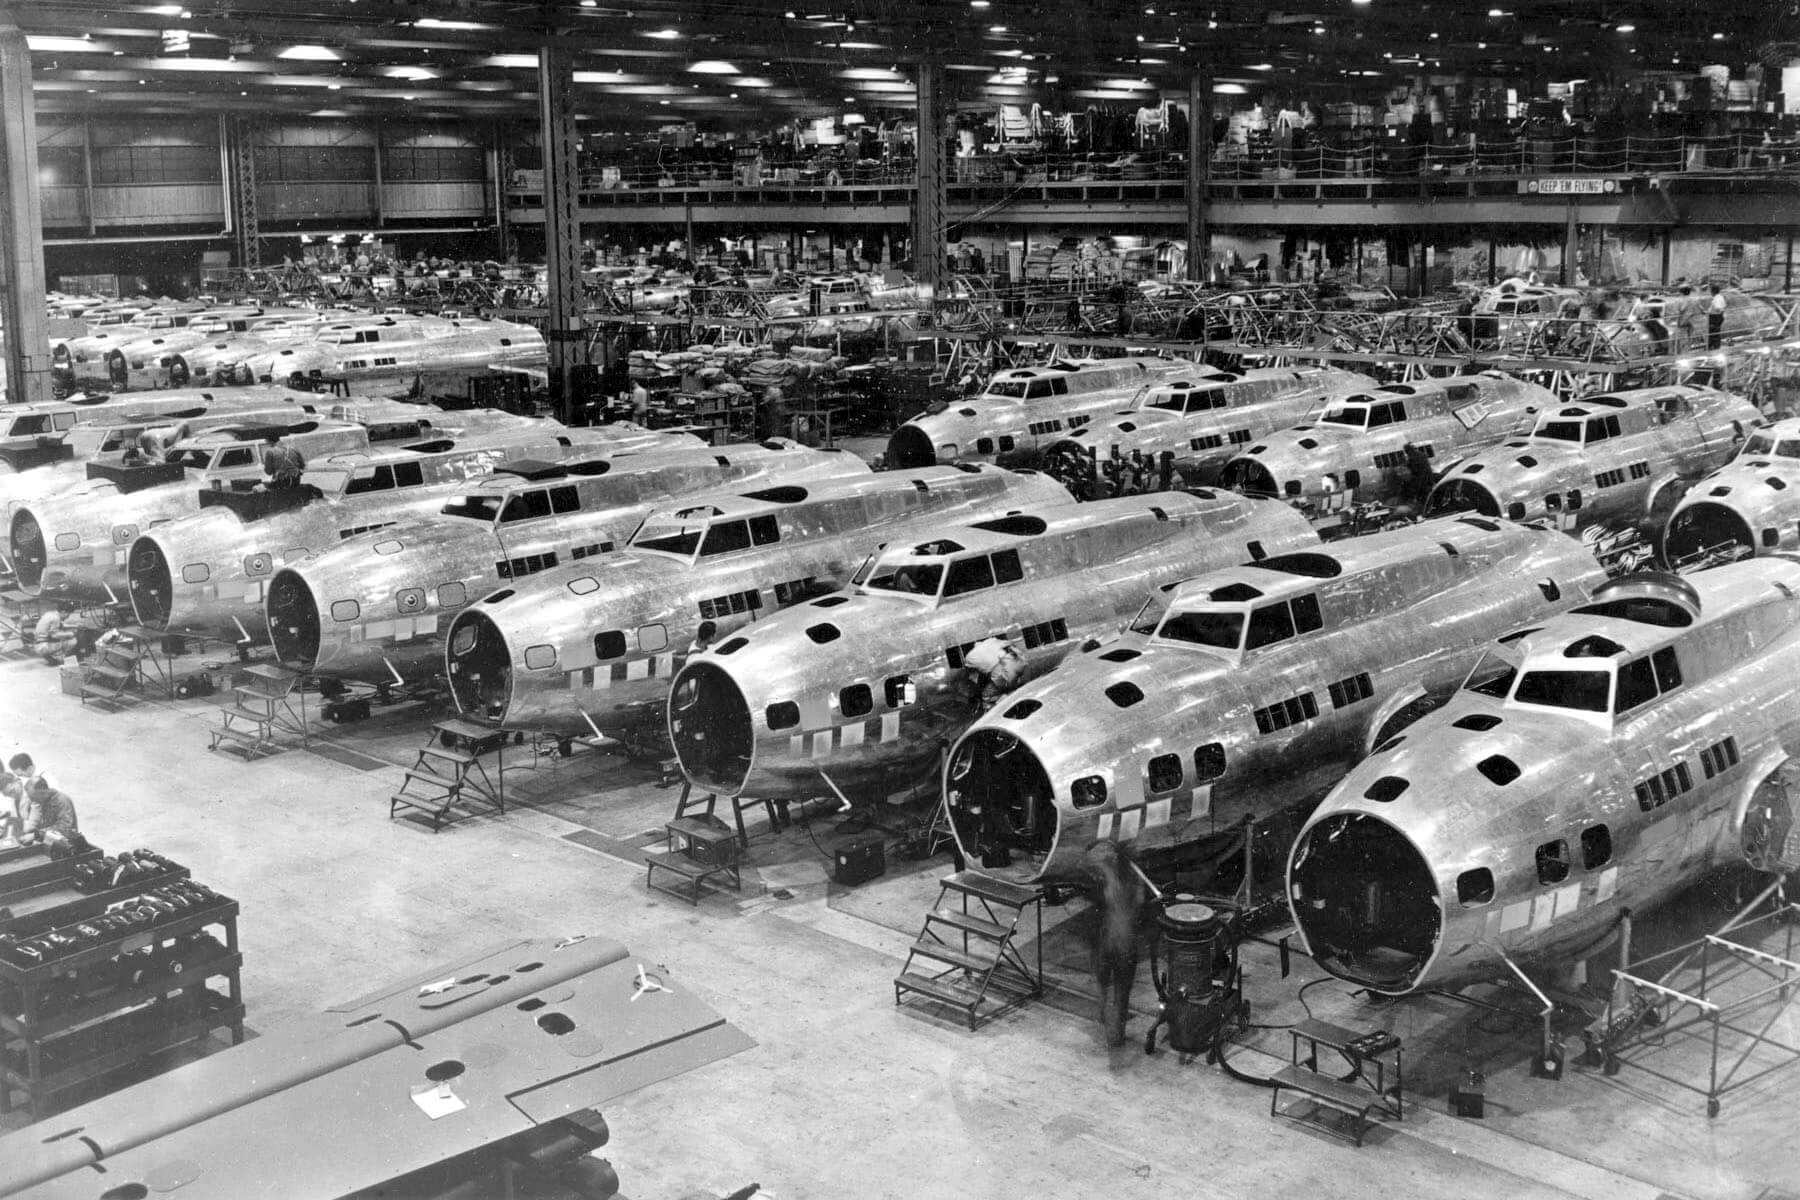 WW2 bomber on assembly line circa 1945